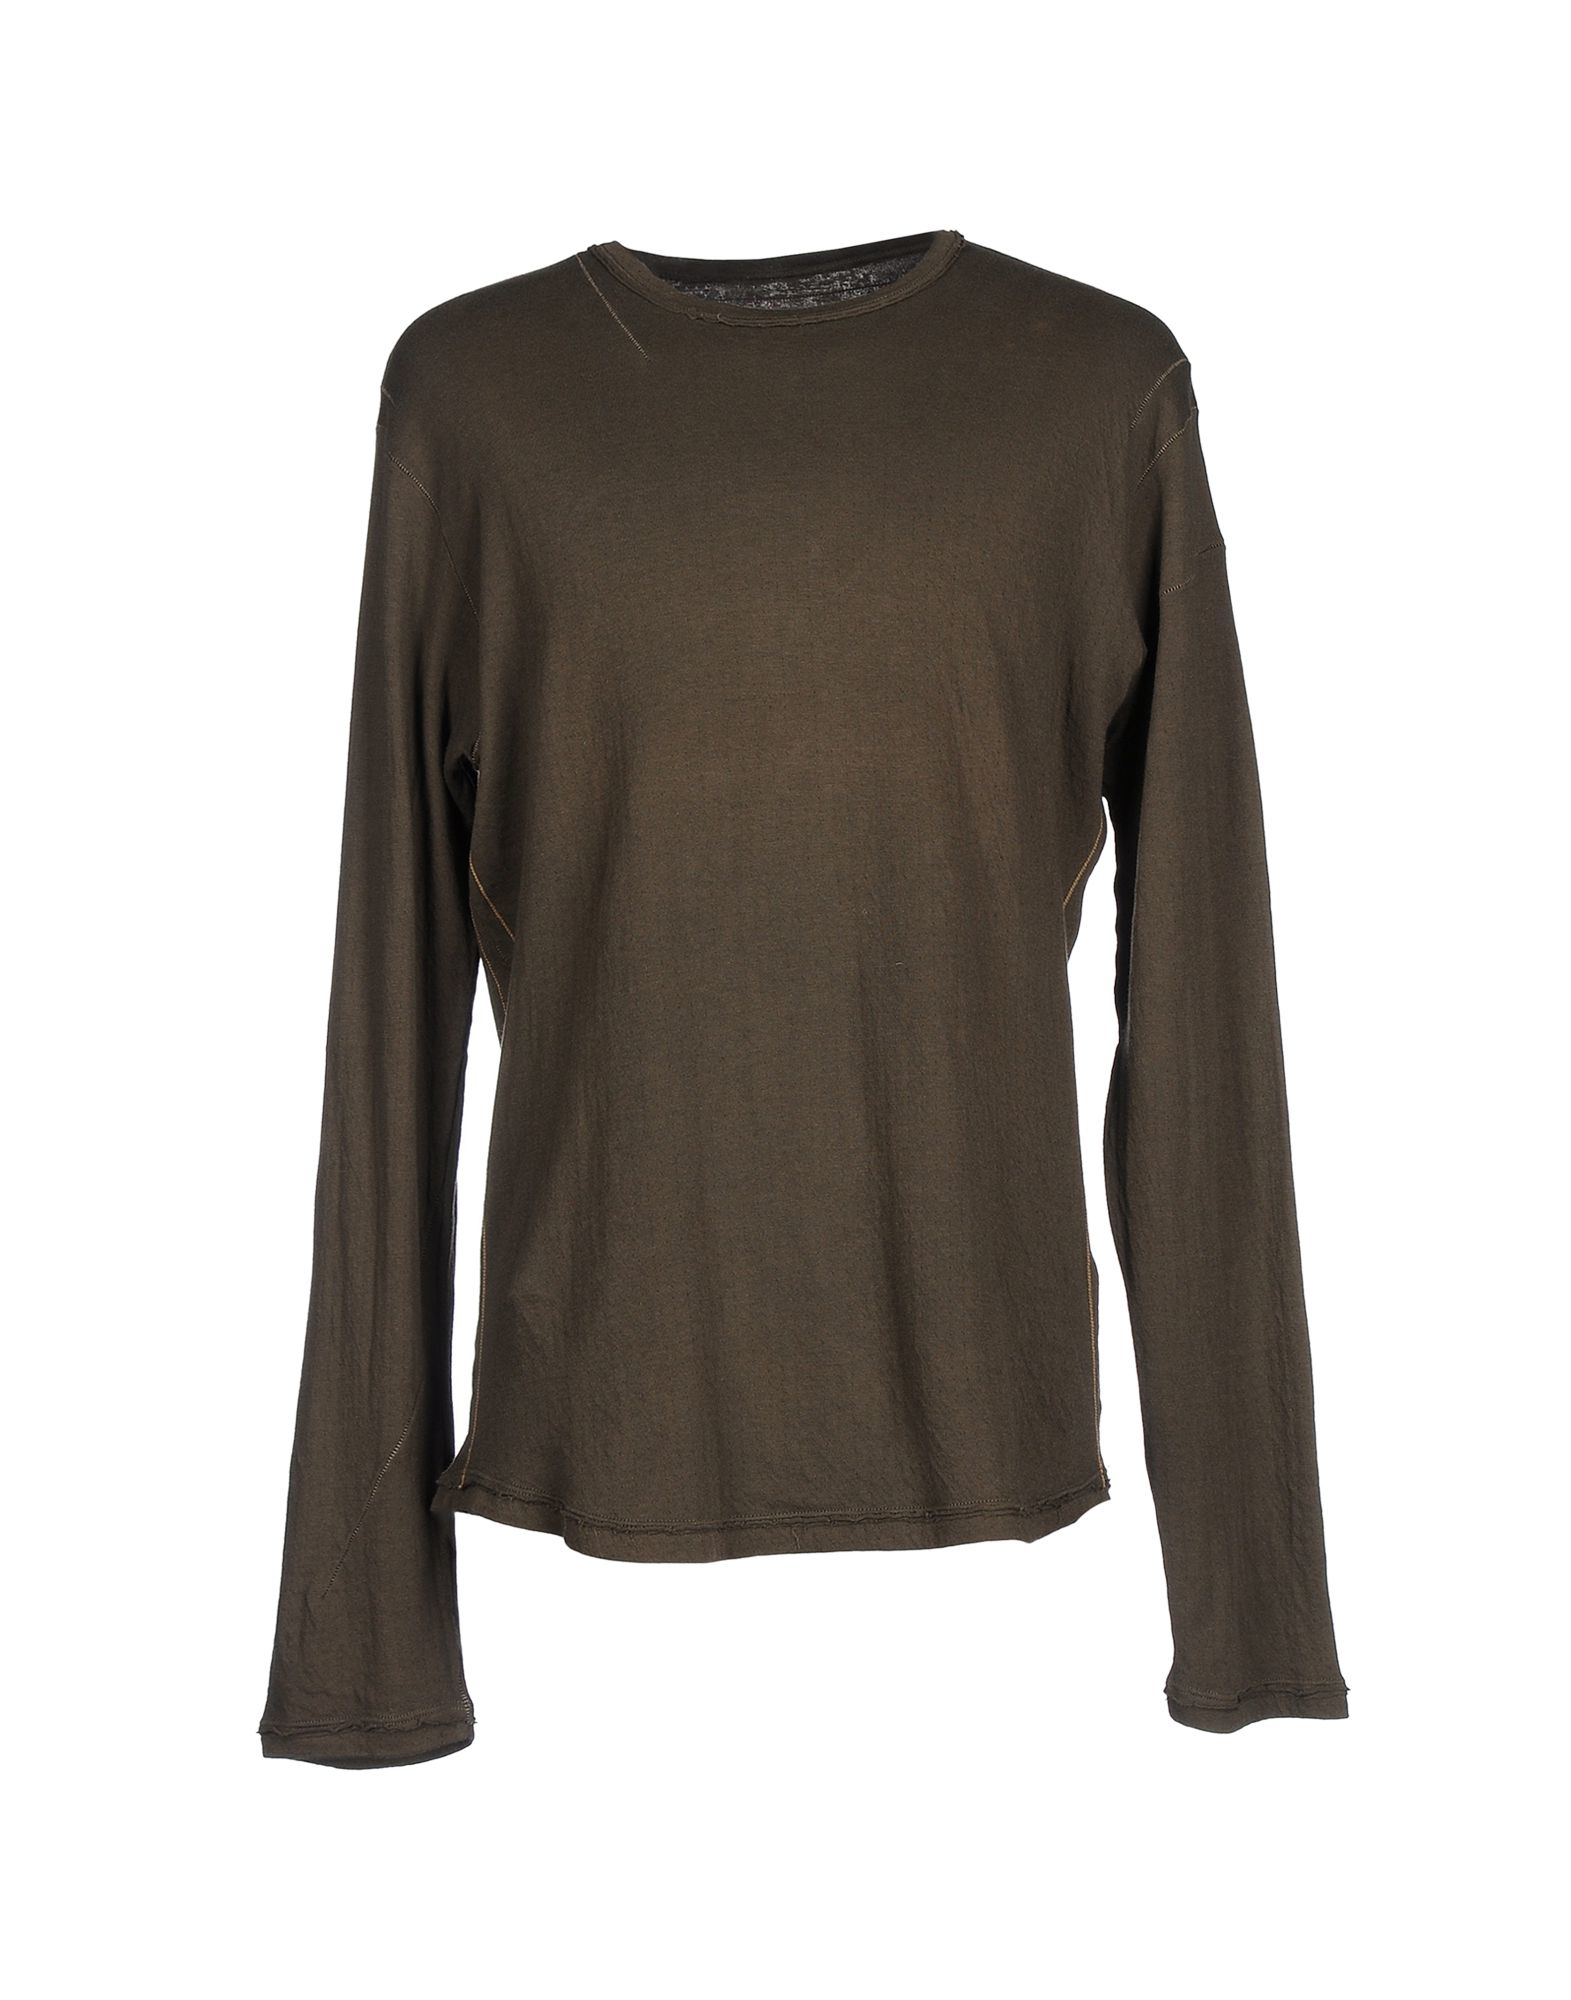 marithe et francois girbaud t shirt in green for men military green lyst. Black Bedroom Furniture Sets. Home Design Ideas